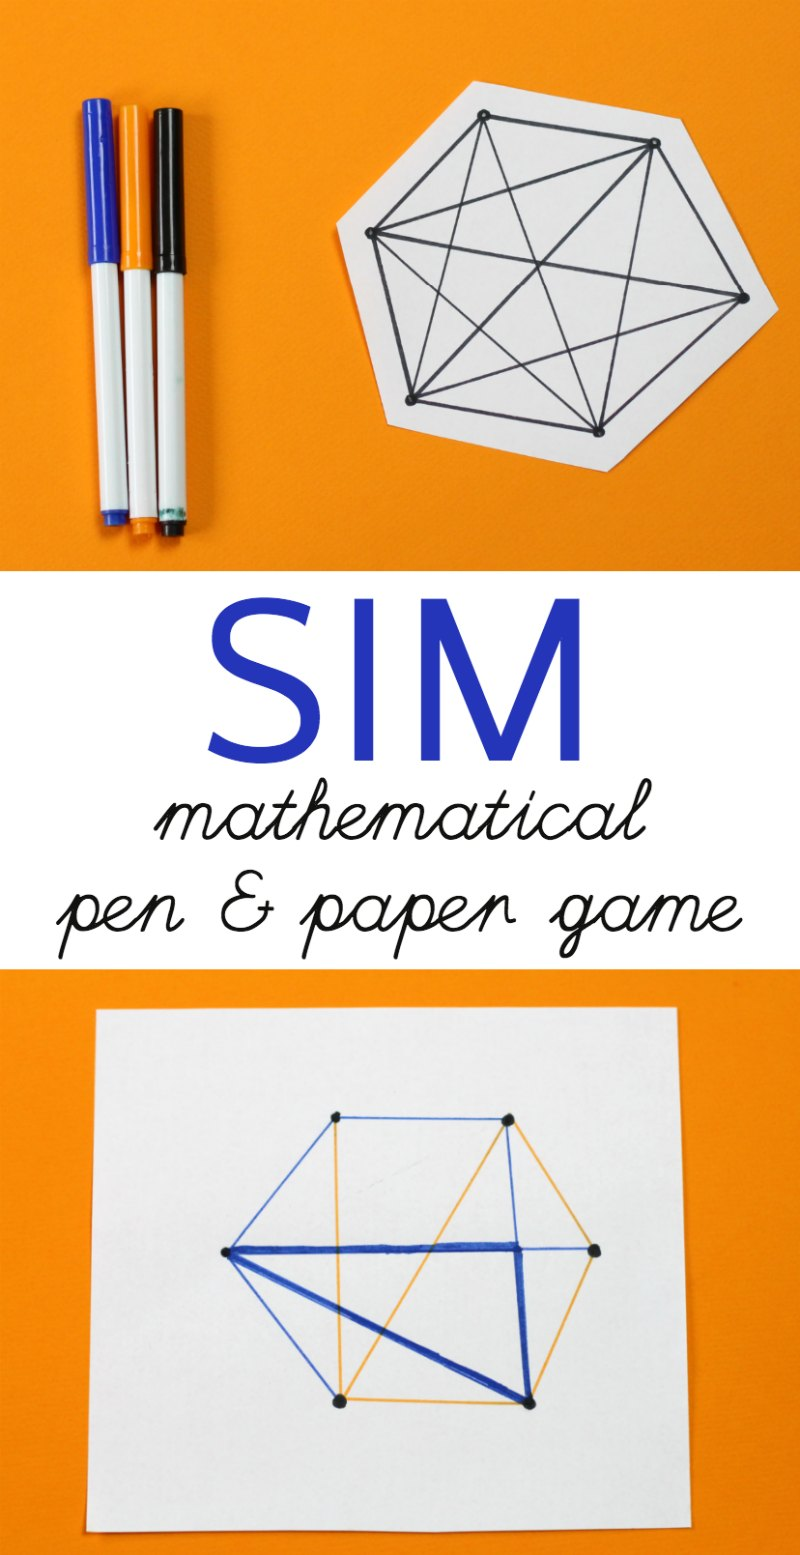 Pen and paper game that is also a math game for kids. Sim makes a great travel game or waiting game for families, too.